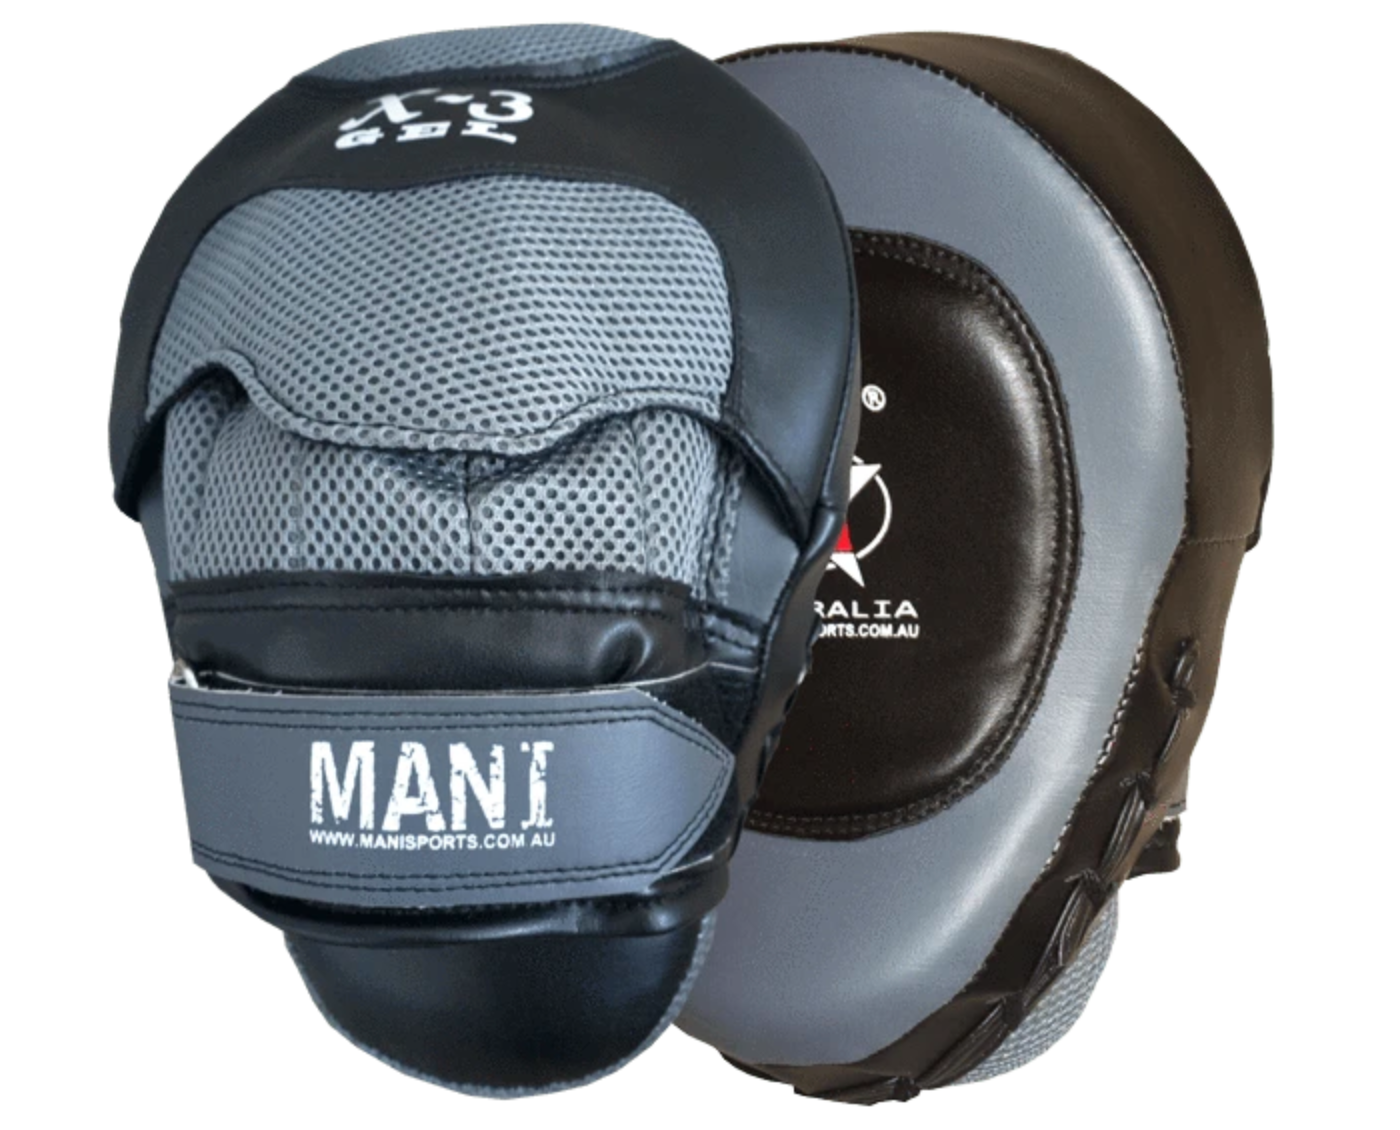 GEL Leather Curved Focus Pad